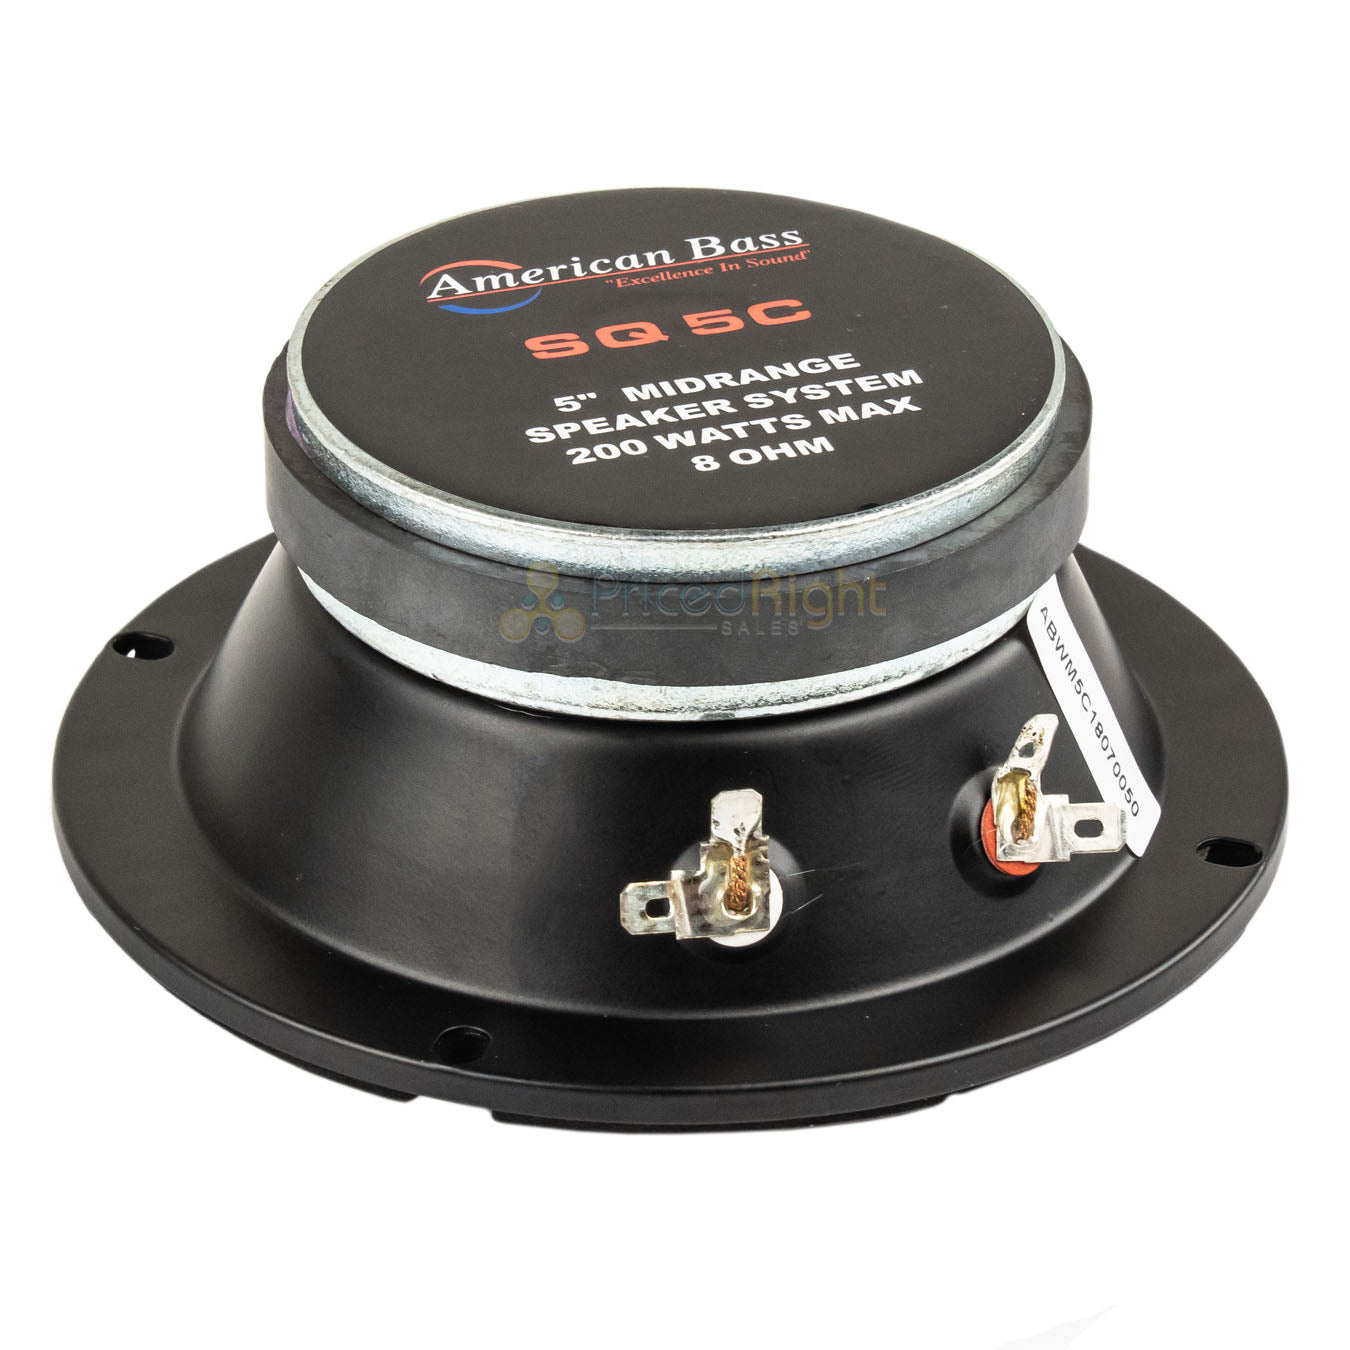 "2 Pack 5"" Midrange Speaker 8 Ohm 200W Max Power Car Audio American Bass SQ-5C"